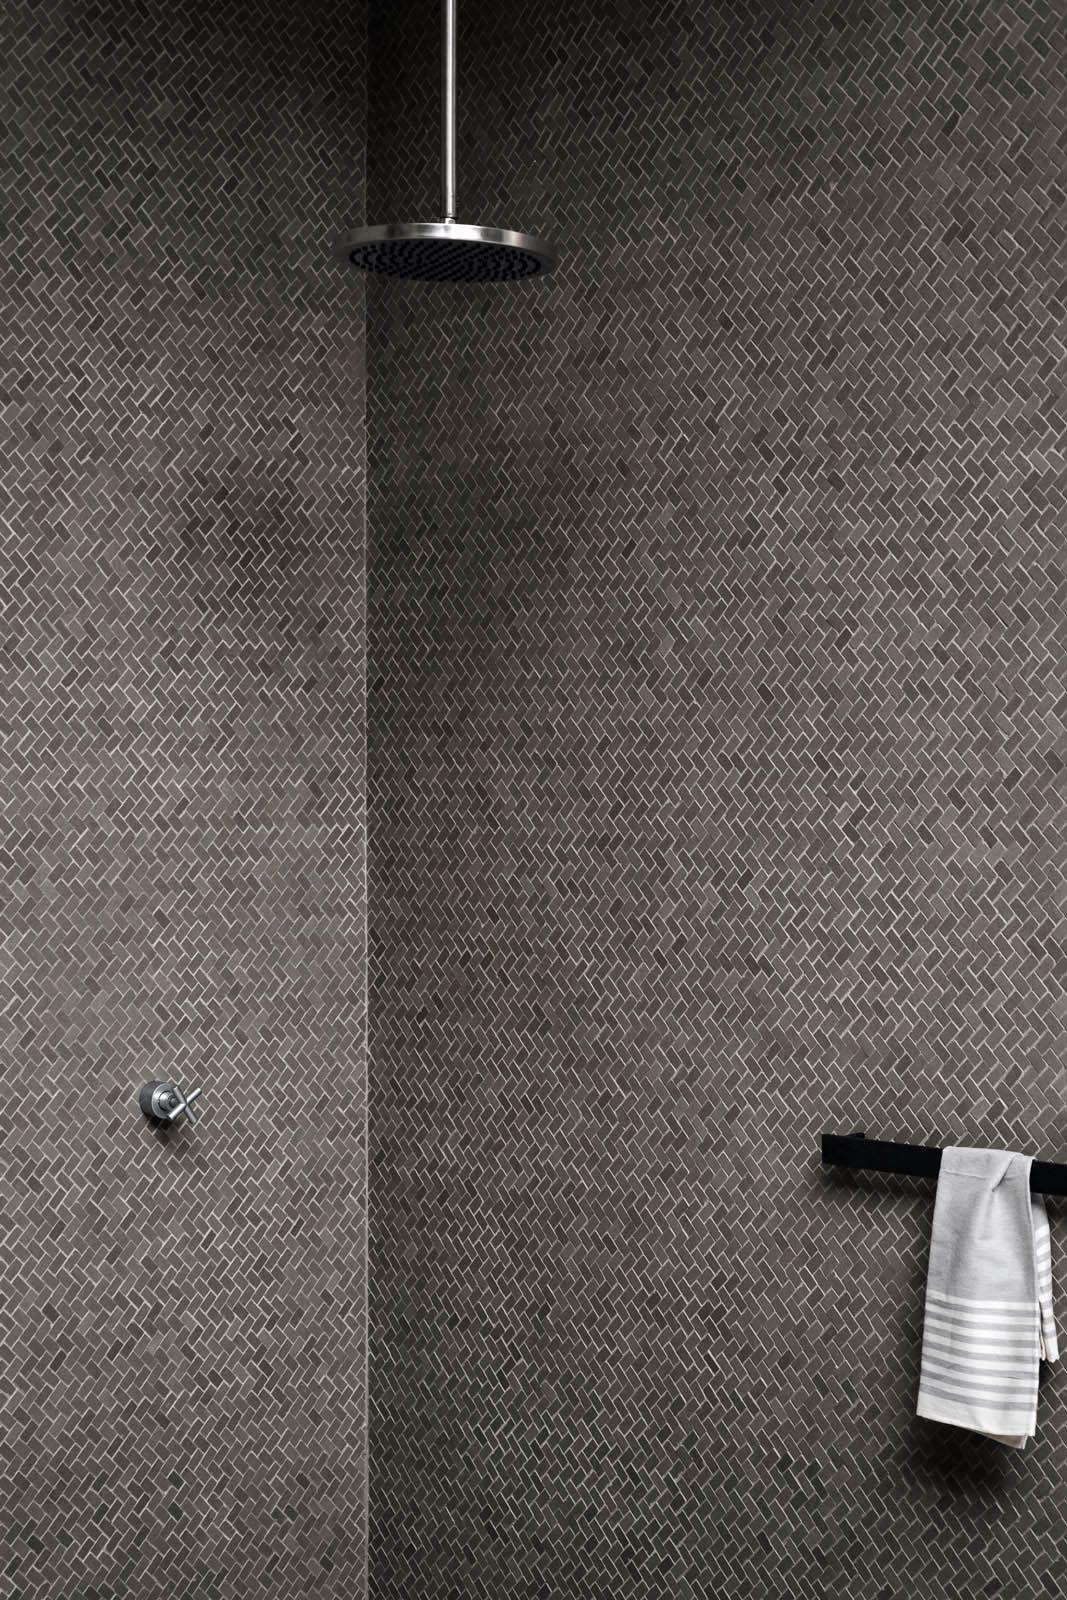 Powder keramikfliesen marazzi 7675 bad pinterest for Keramikfliesen bad